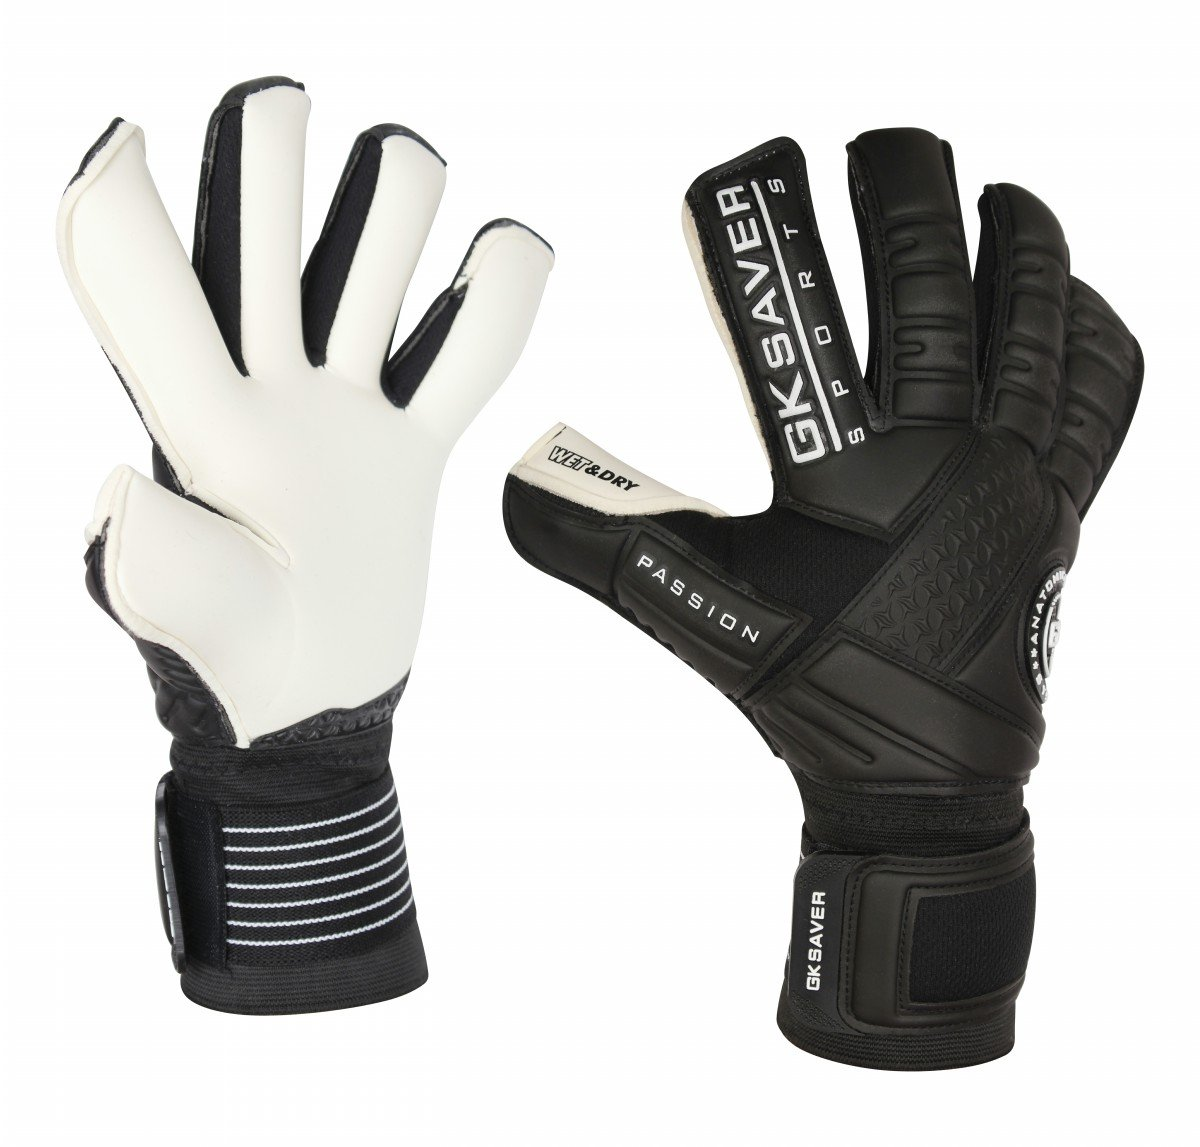 GK Saver Fußball Fußball Torwart Handschuhe Professional Passion PS10 Wet & Dry